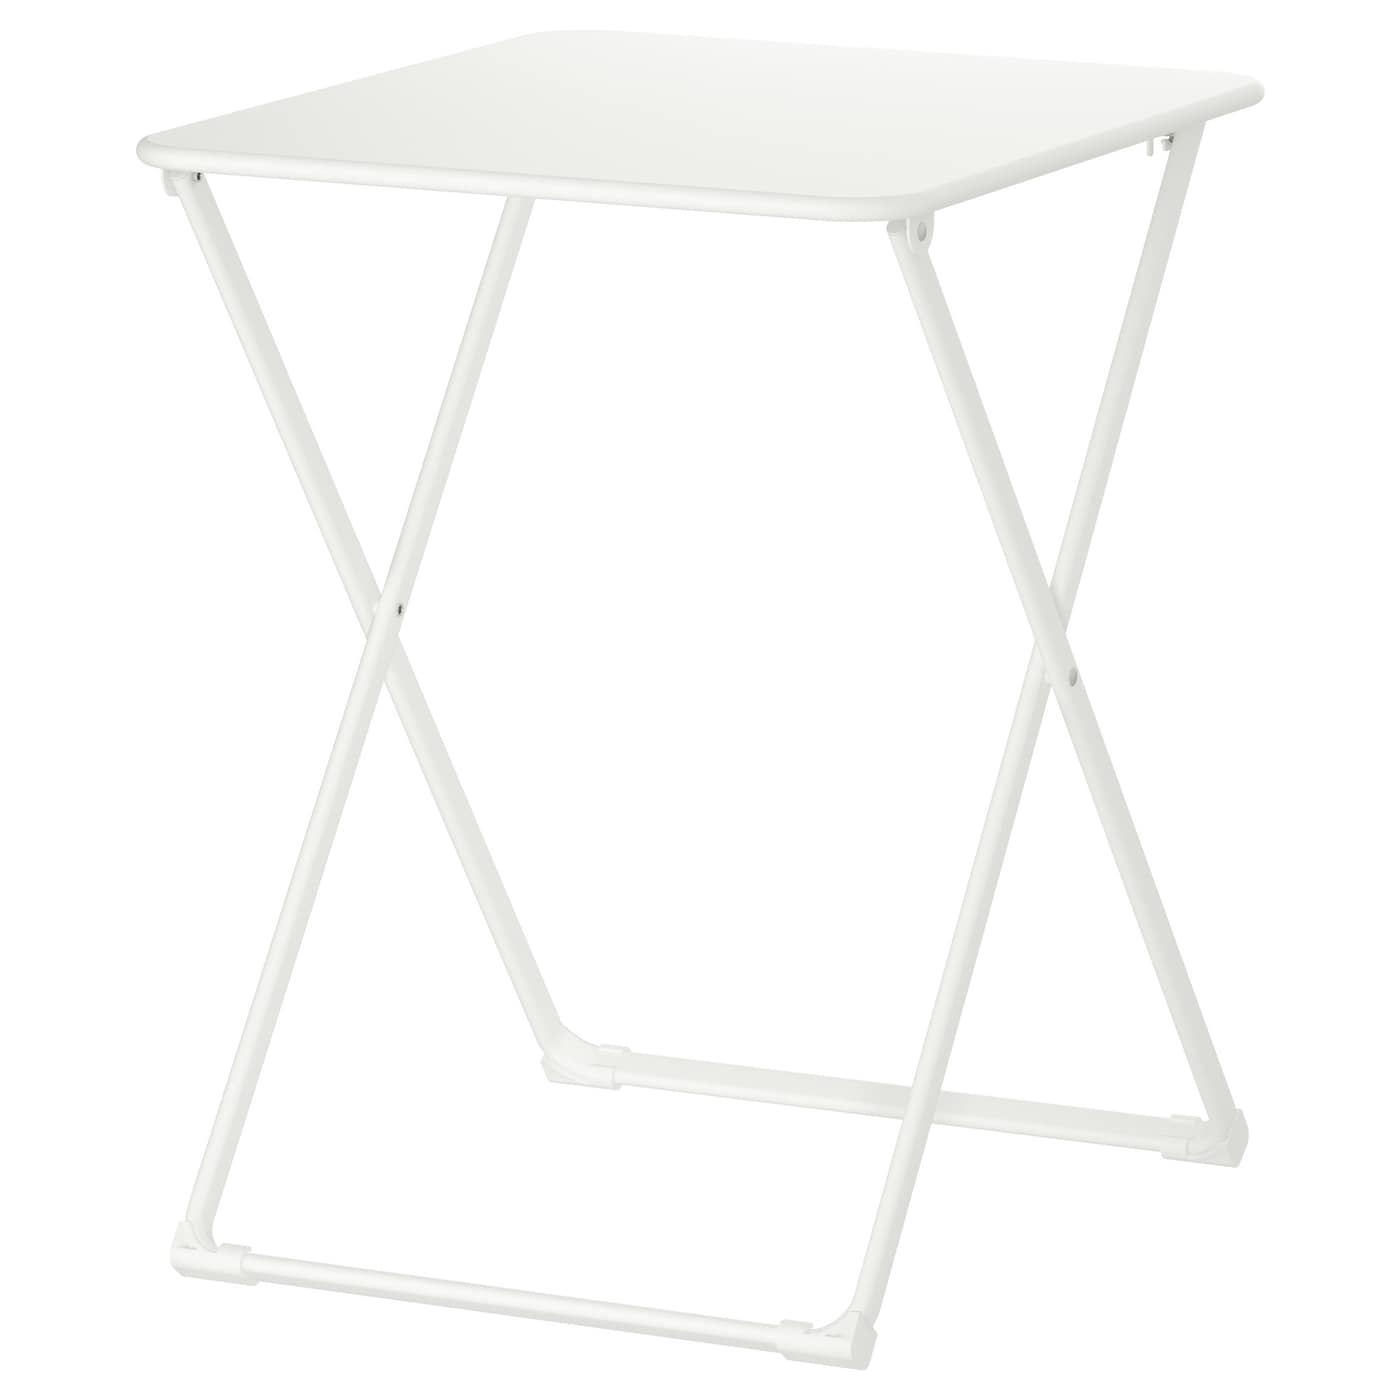 ikea hr table outdoor easy to fold up and put away